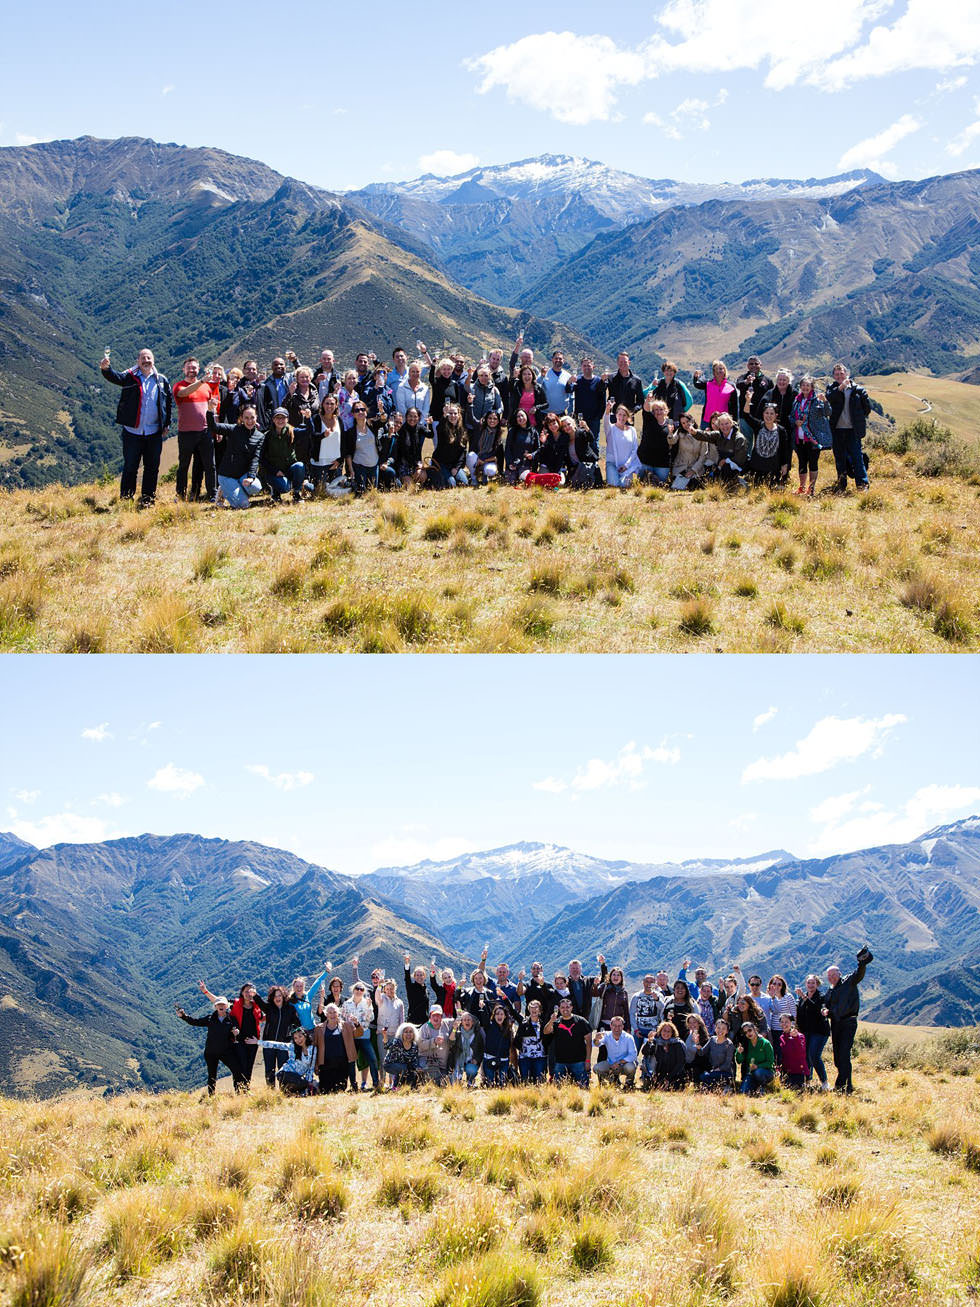 ArtyJ Photography | Events, Millbrook Resort, Skippers Canyon, New Zealand, Queenstown, Hartmann, Conference, Corporate, Photography | Hartmann 2017 Part 4 | Corporate & Conference